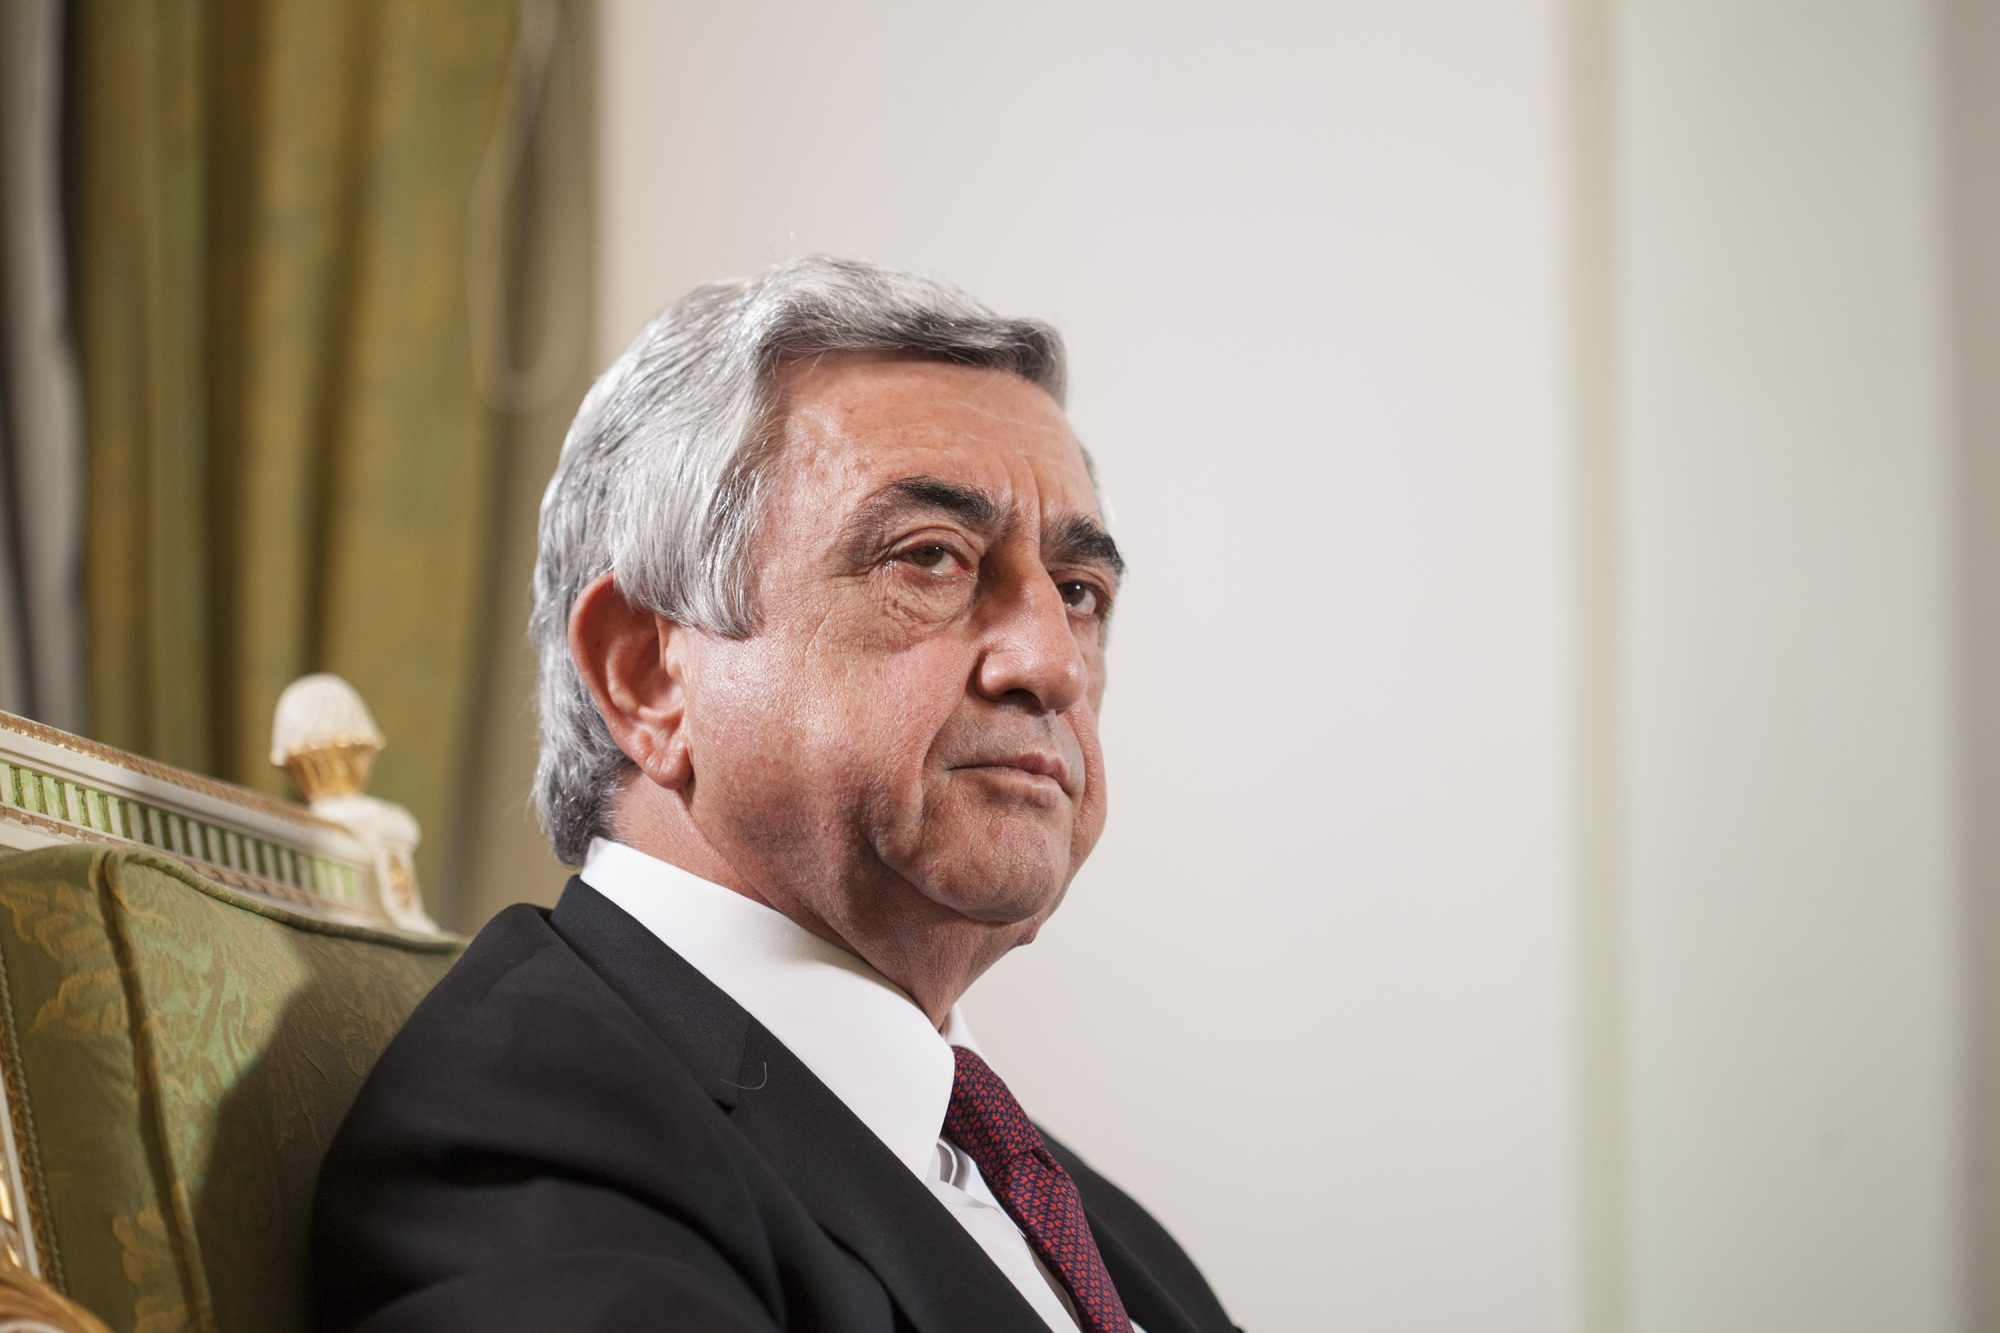 Serzh Sargsyan, Armenia's president, speaks during an interview at his residence in Yerevan, Armenia, on Saturday, April 23, 2016. XXX ADD SECOND SENTENCE HERE XXX. Photographer: Daro Salukauri *** Local Caption *** Serzh Sargsyan